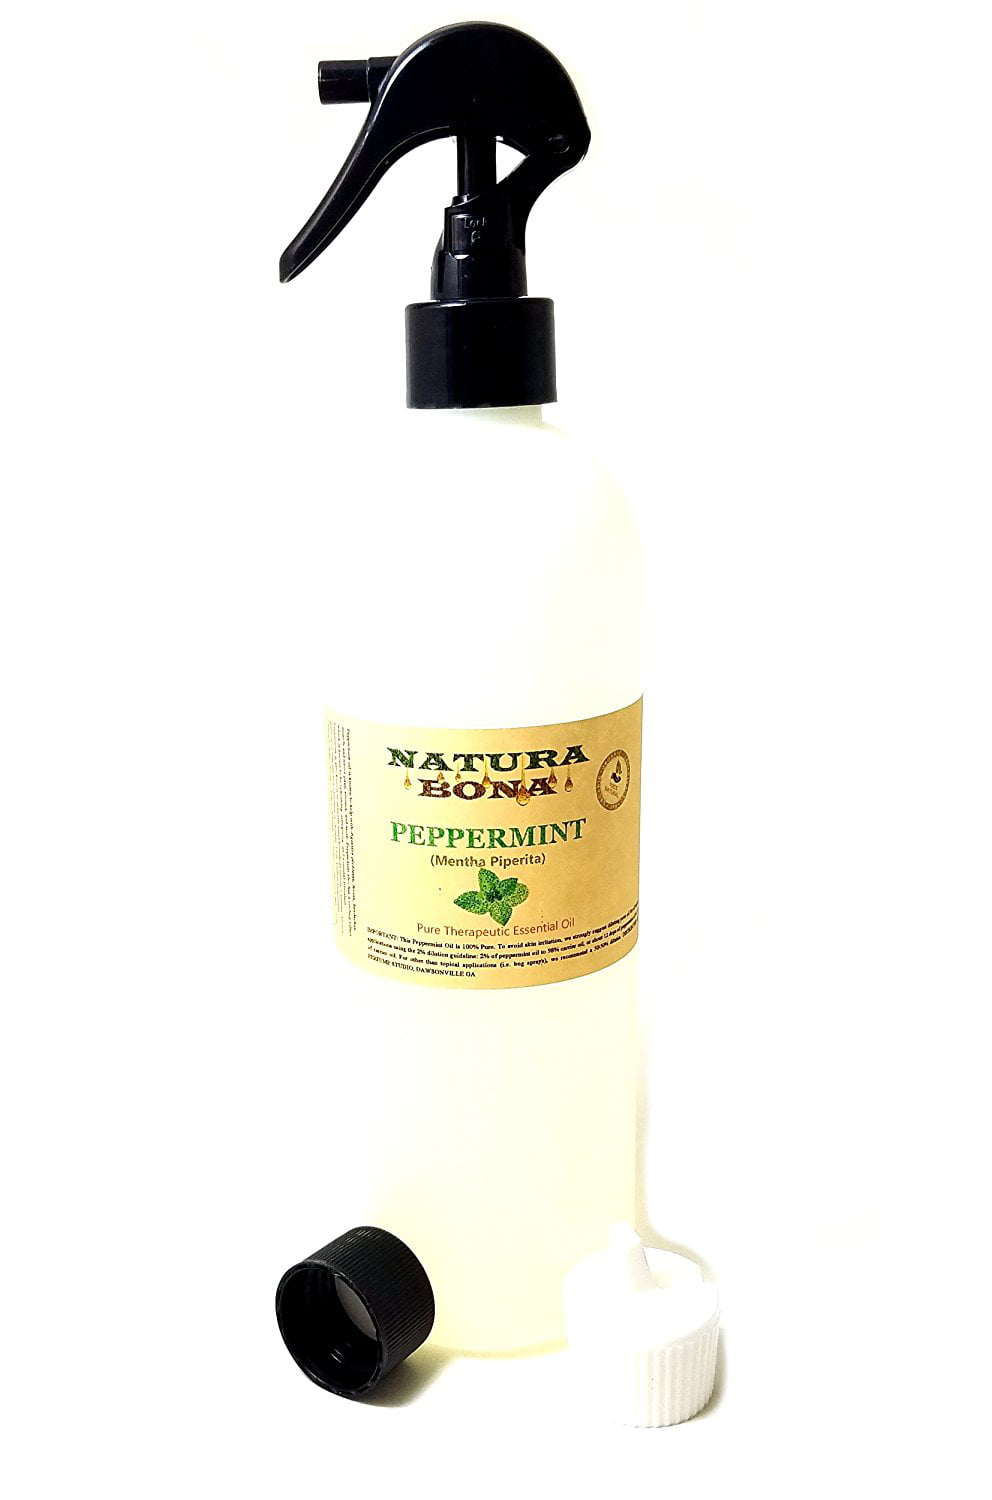 16oz Peppermint Oil Bulk Organic Peppermint Essential Oil Pure Undiluted Proven To Naturally Repel Ants Spiders Mice Mosquitoes Etc 16 Oz Trigger Spray Flip Top Pourer Walmart Com Walmart Com